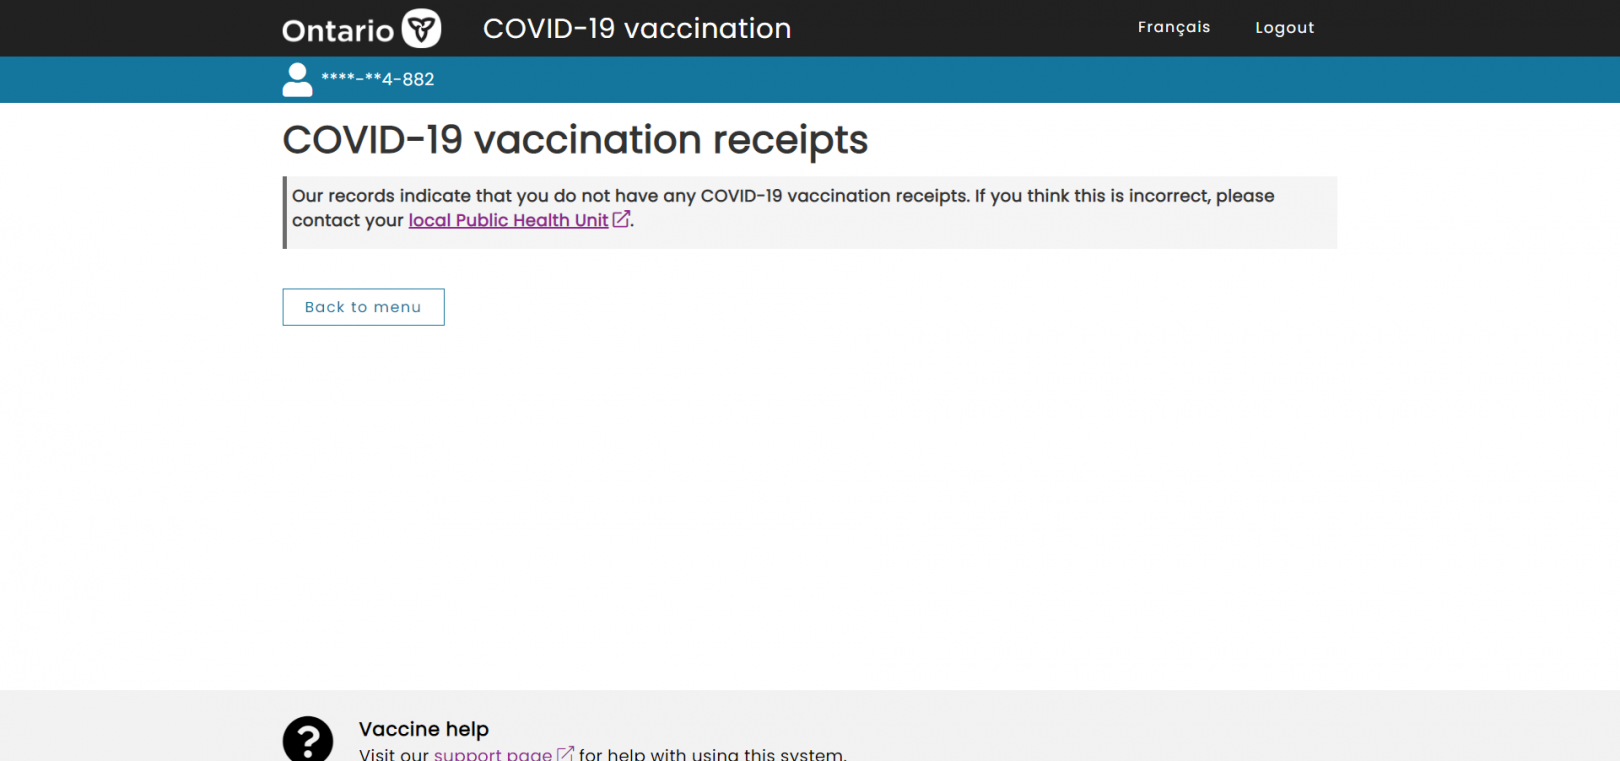 Ontario Health, no vaccination proof under my name, September 2021